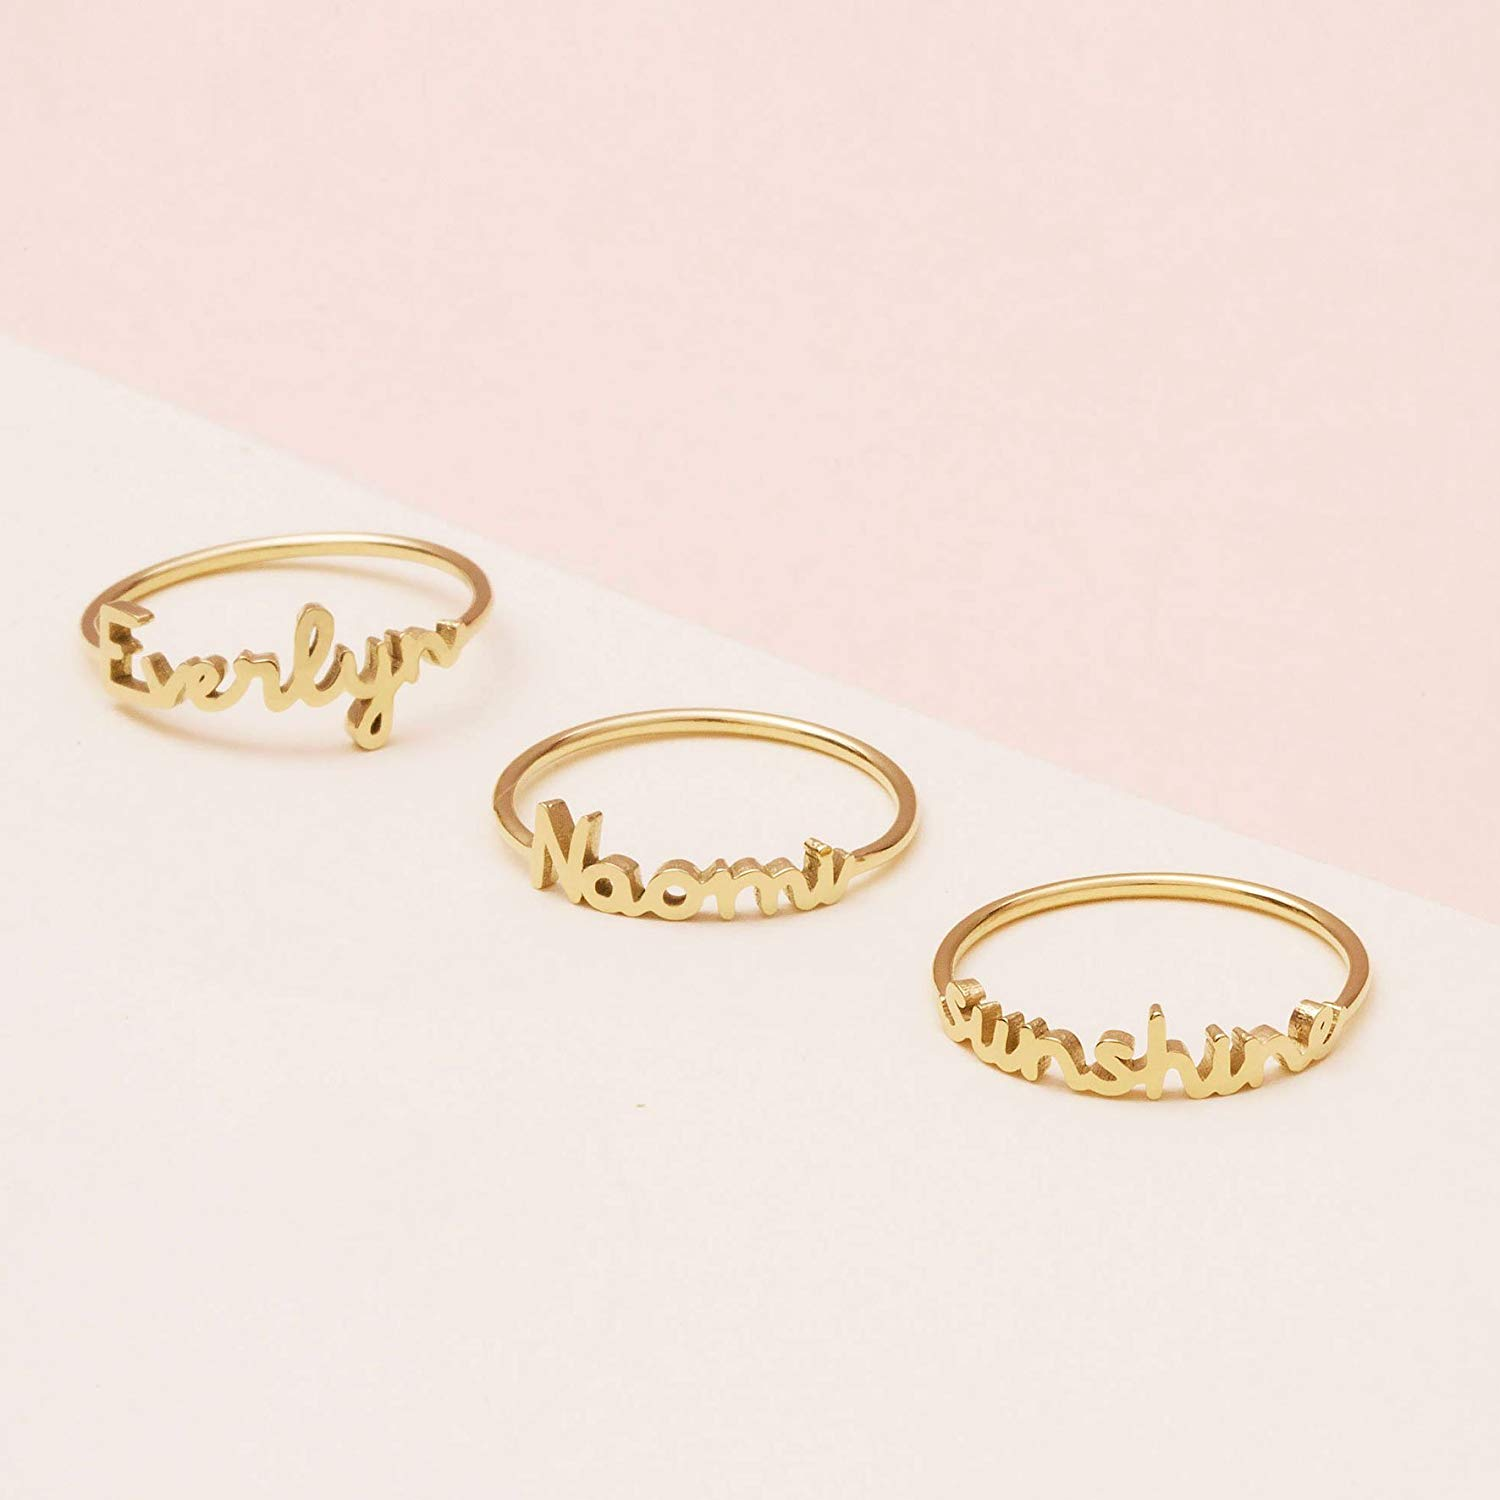 f7b9649d13bcc Cheap Name Ring Gold, find Name Ring Gold deals on line at Alibaba.com